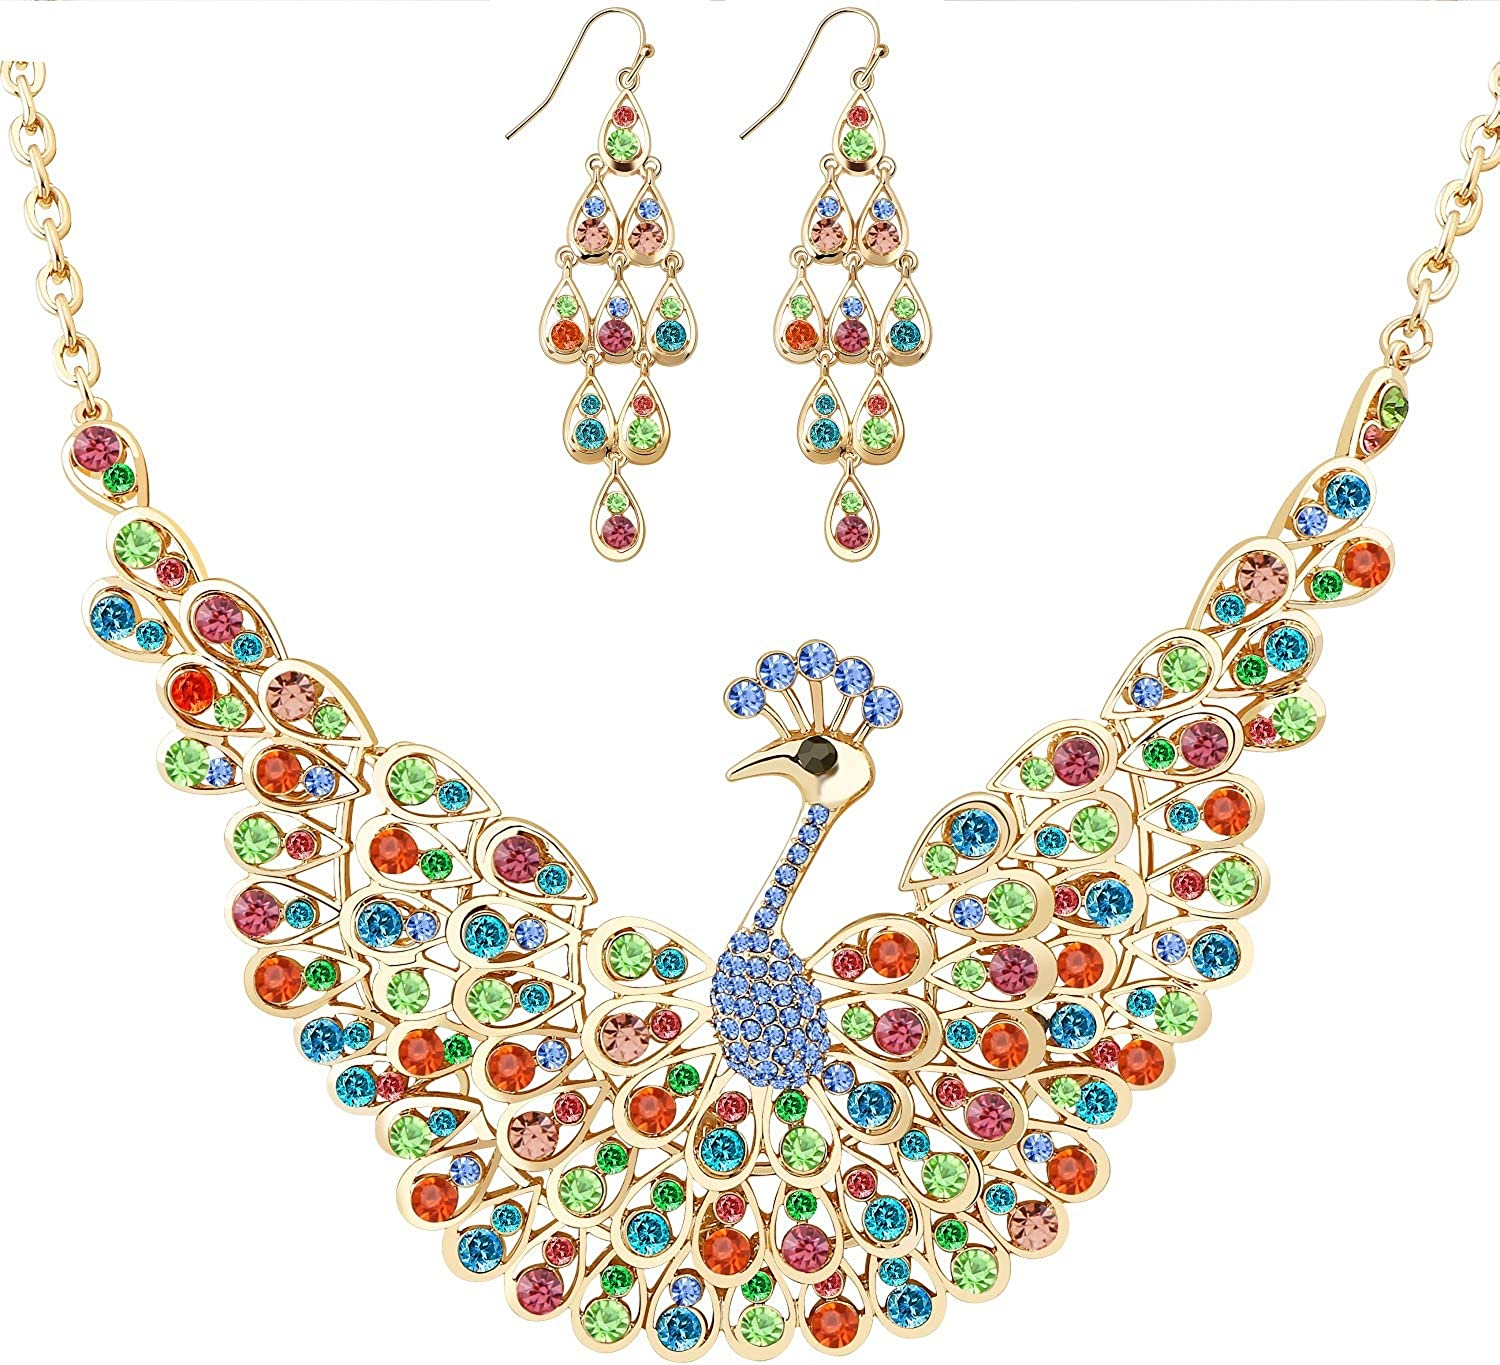 Peacock Necklace Earrings Jewelry Set for Women, Bling Jewelry Set for Night Out Party, T Show